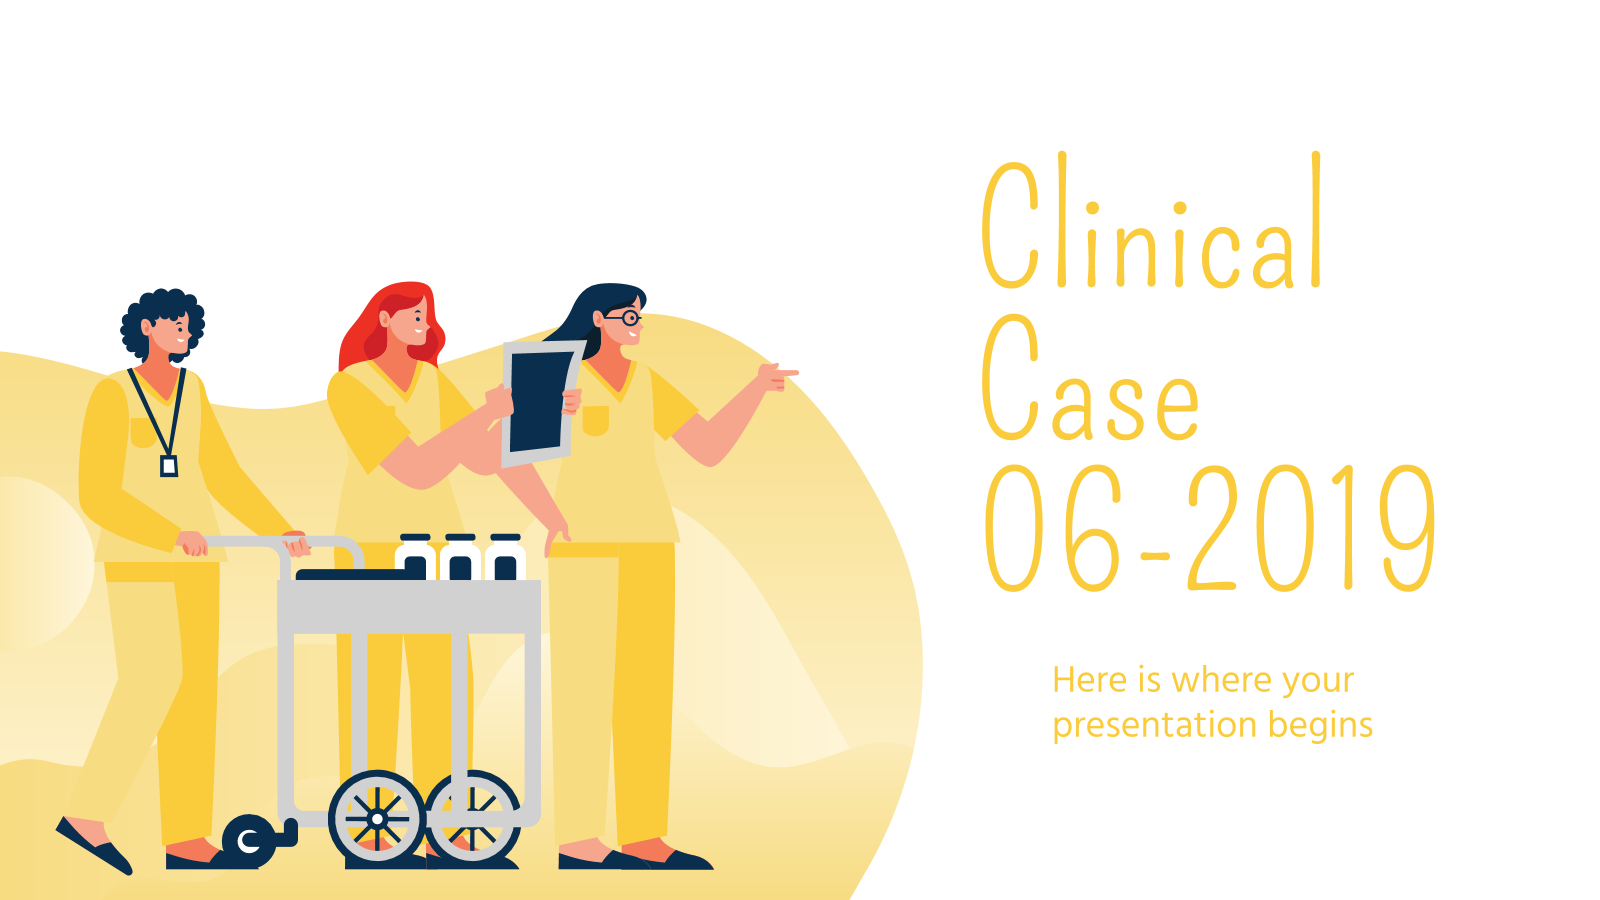 Clinical Case 06-2019 presentation template